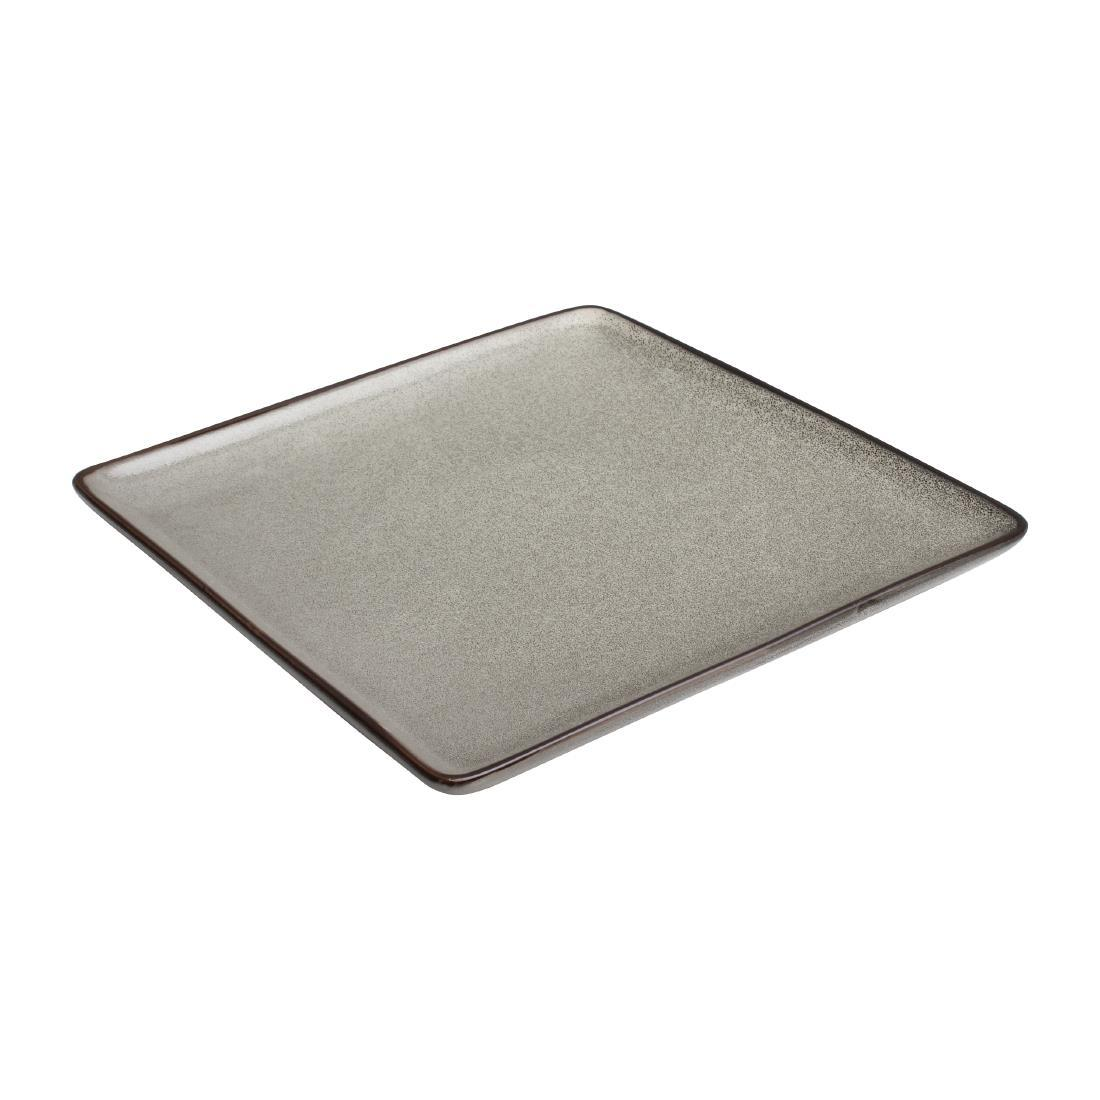 DF172 - Olympia Mineral Square Plate 230mm - Case  - DF172